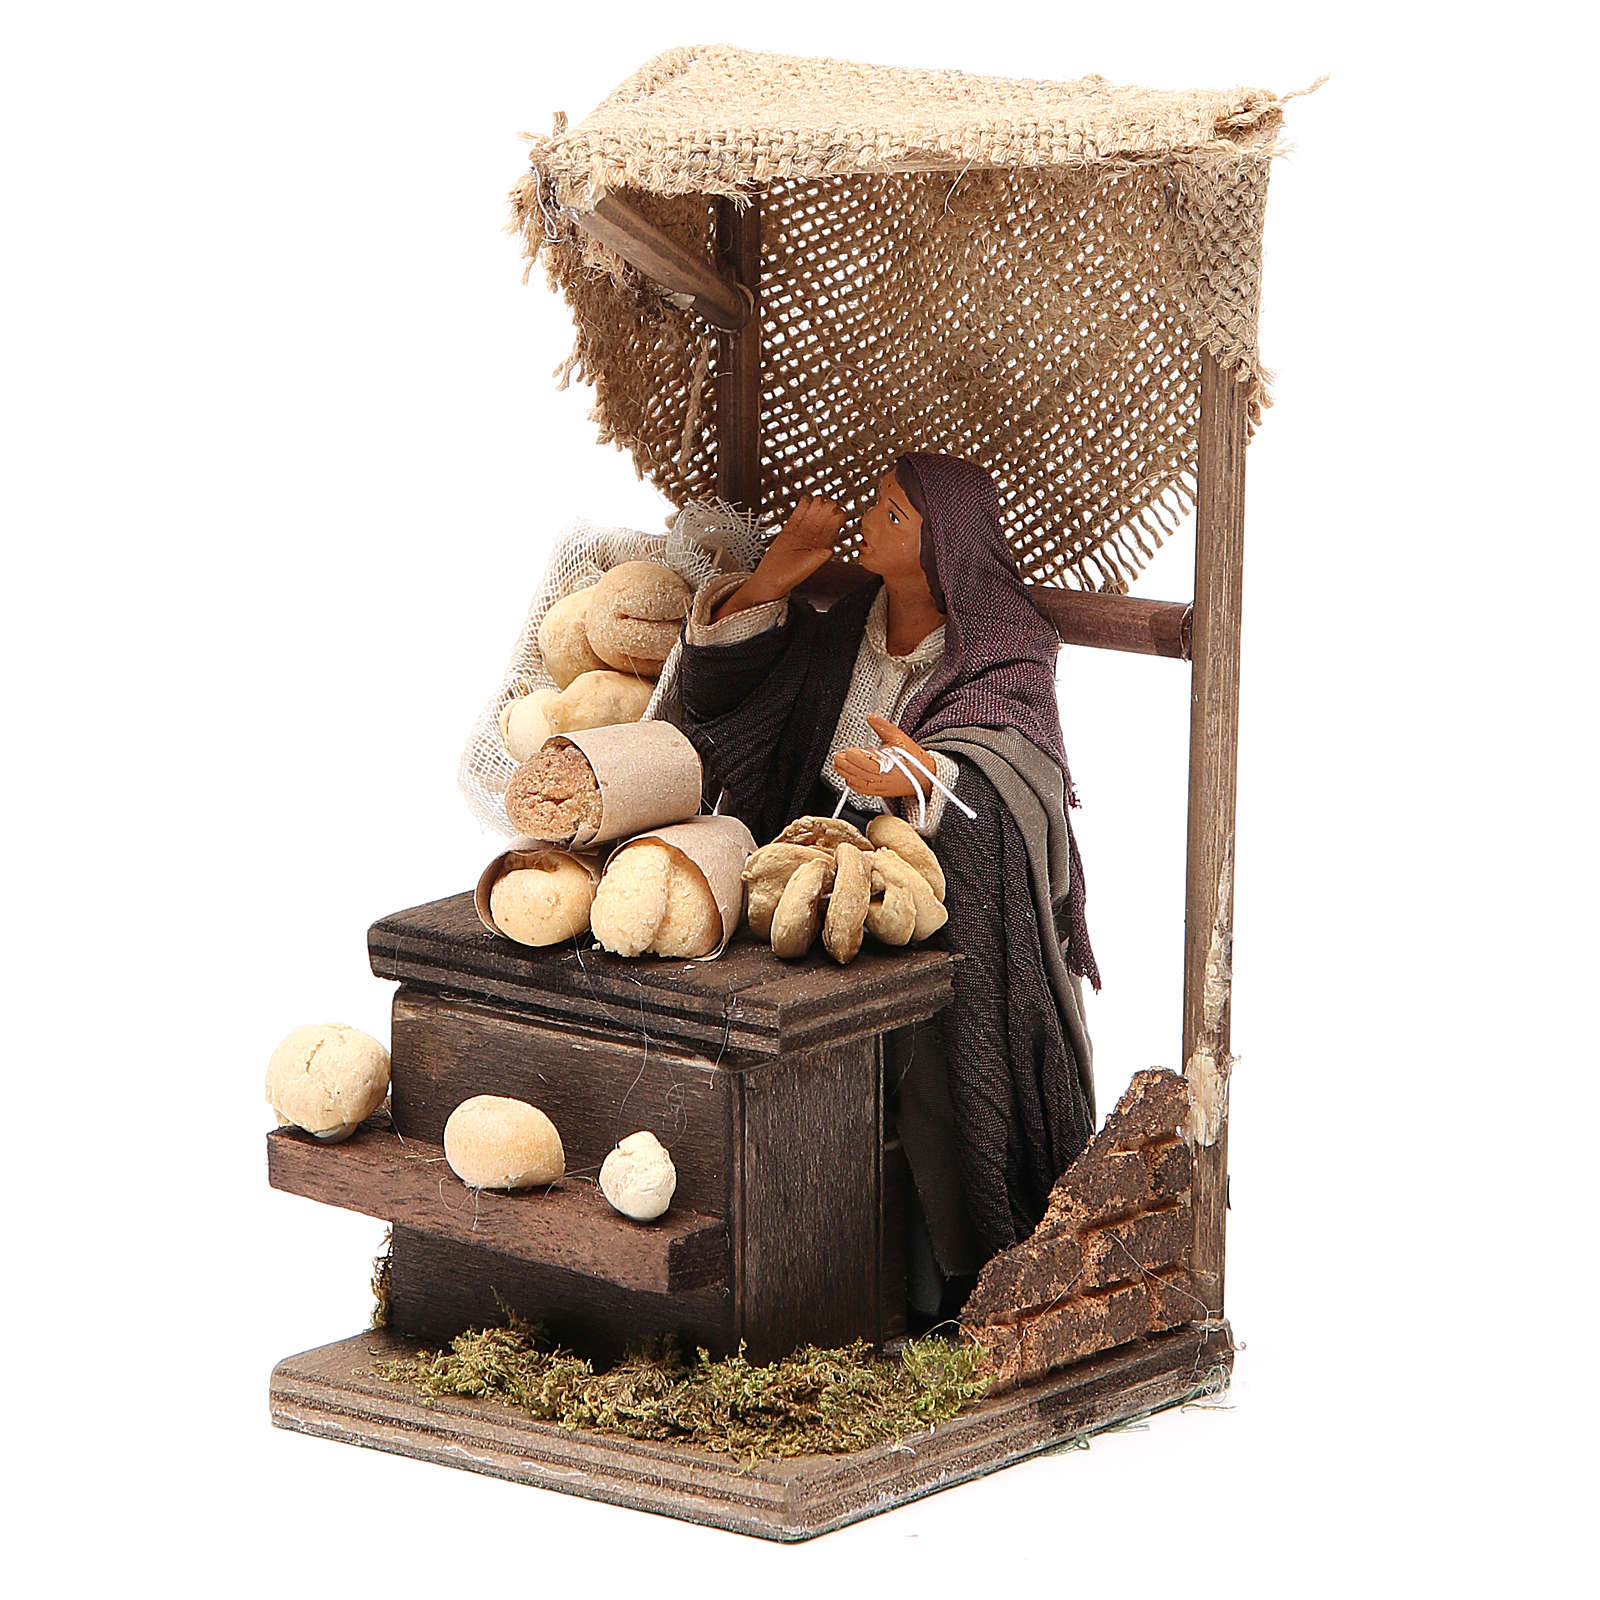 Bread seller with stall, animated Neapolitan Nativity figurine 12cm 4